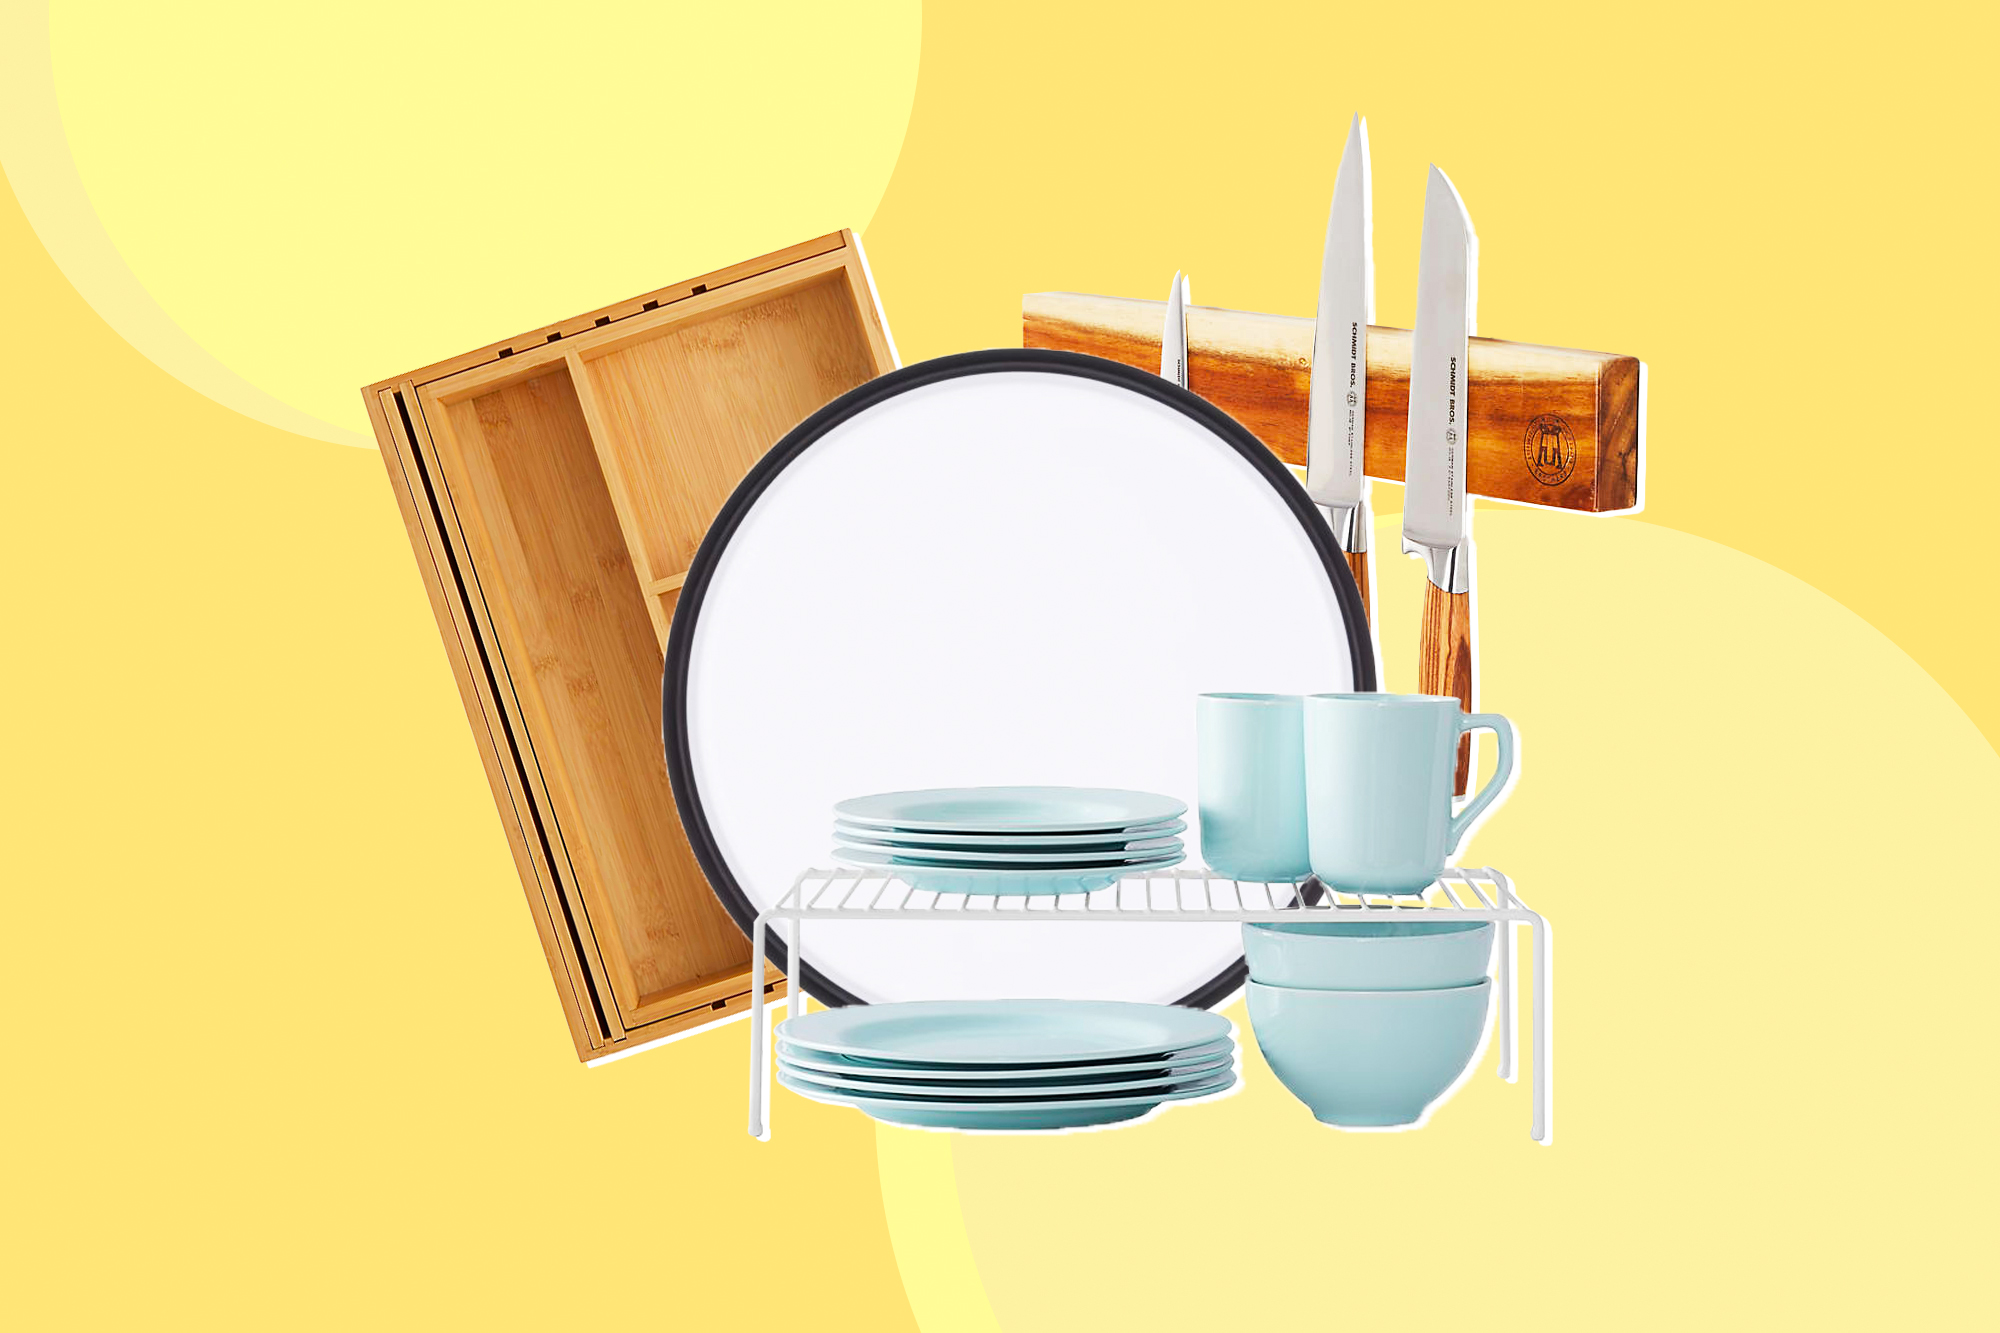 A collection of kitchen organizing products on a designed background